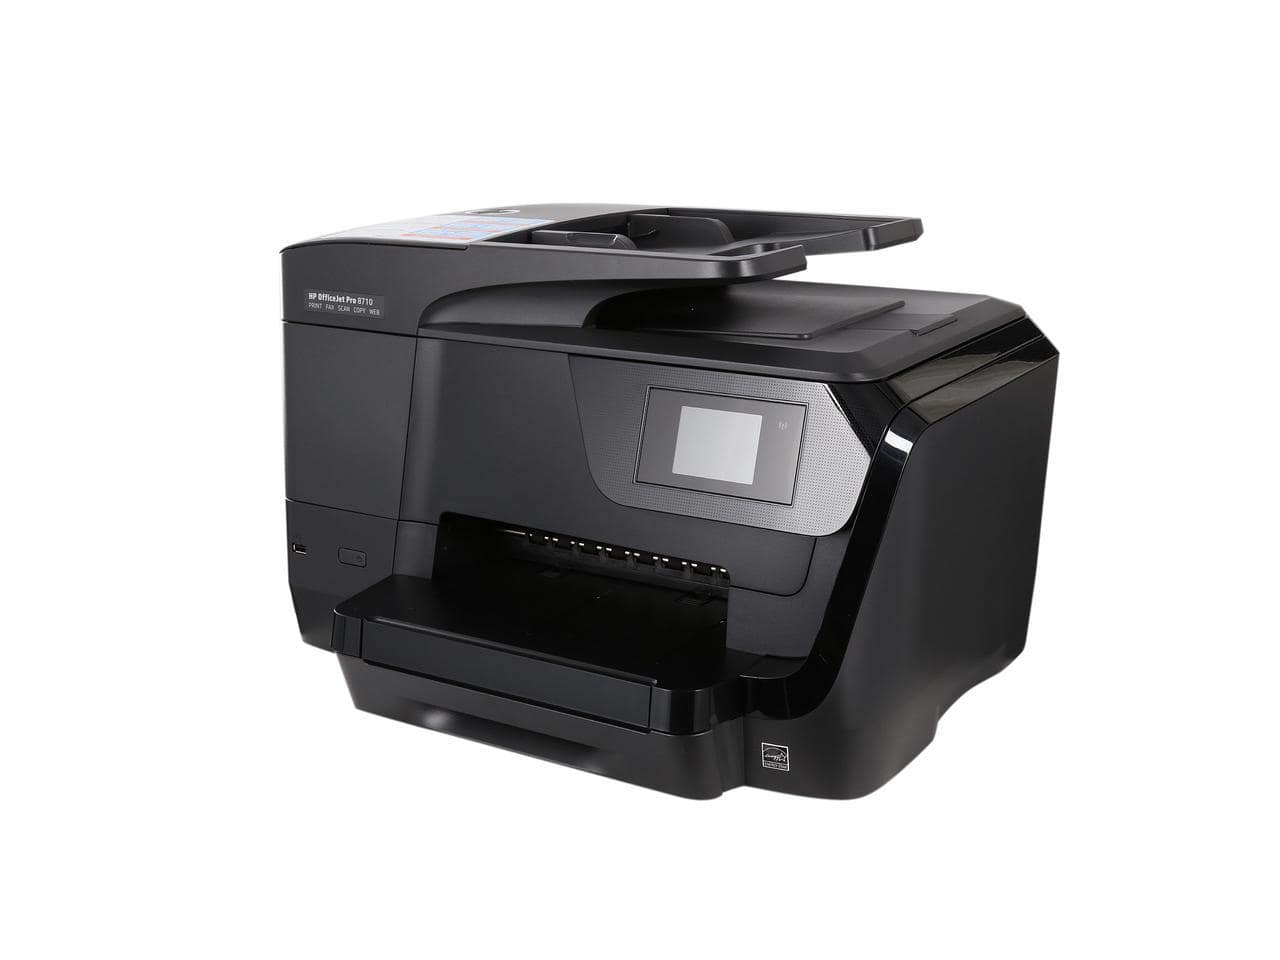 HP OfficeJet Pro 8710 (M9L66A#B1H) Color Inkjet All-In-One Printer $70 After Free $30 Newegg Gift Card + Free Shipping